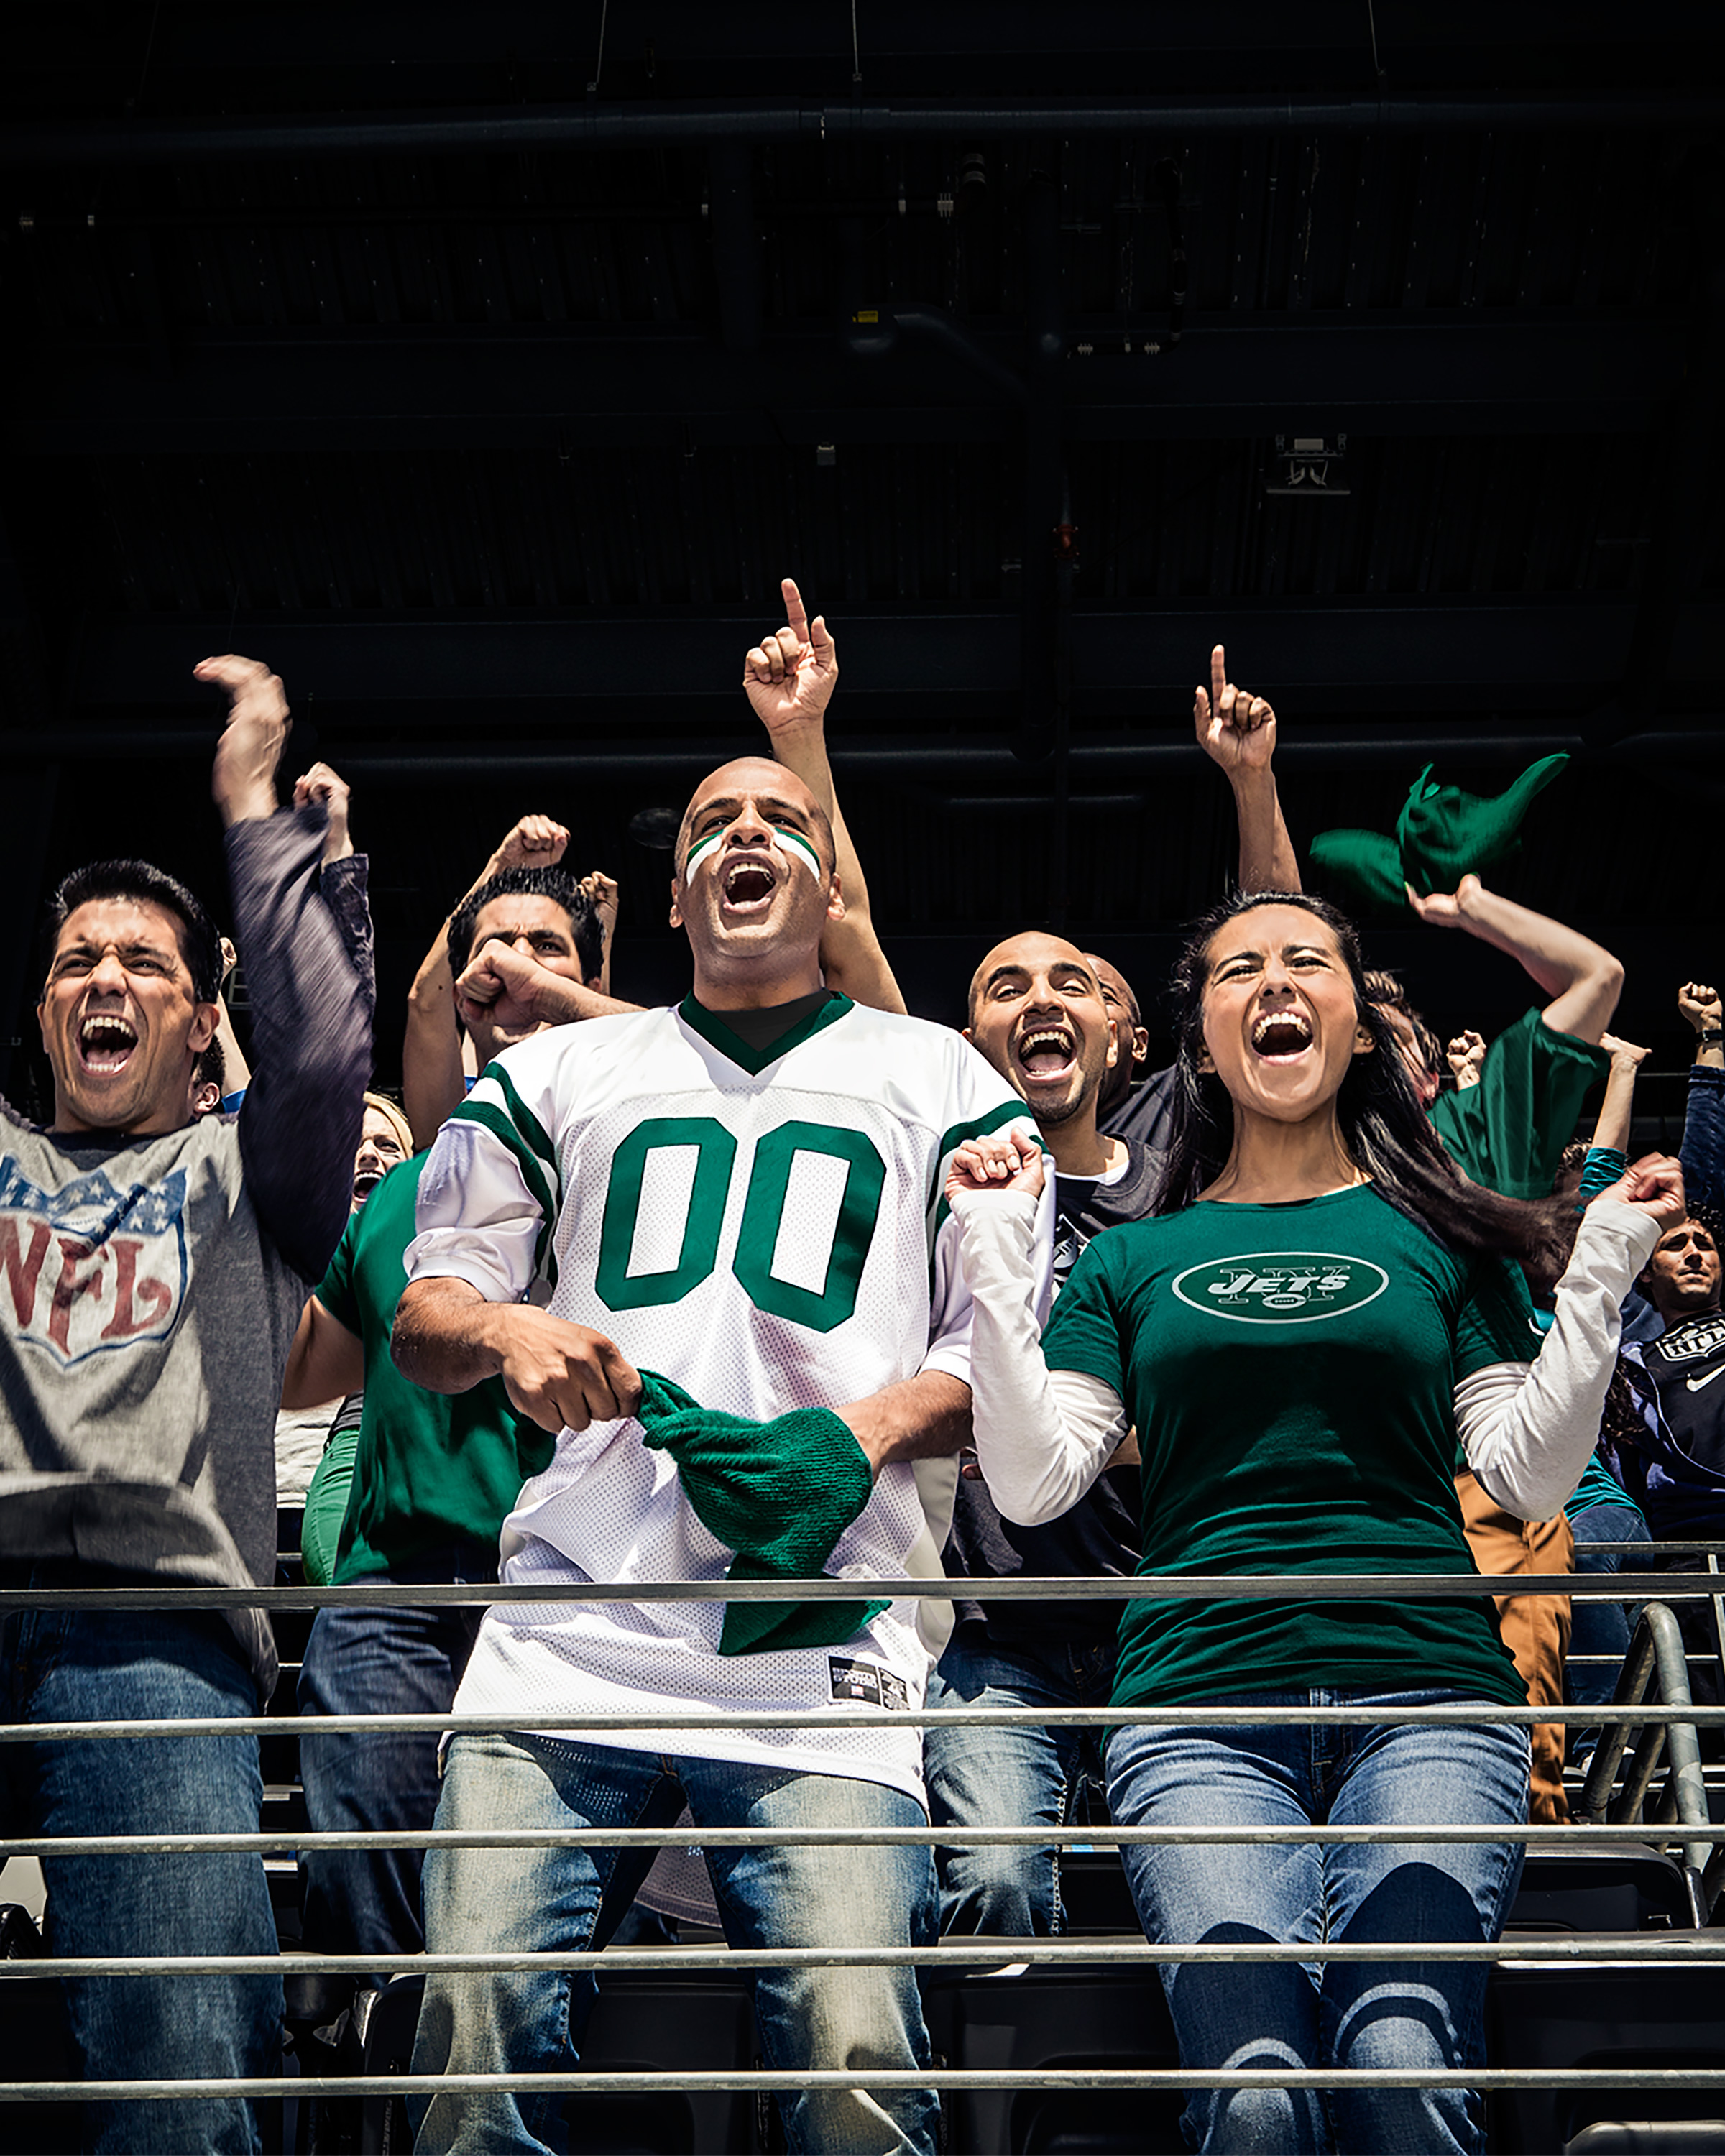 NFL_FritoLay_Fan_Group_Hispanic_Card-048-Jets-v1-1-Del